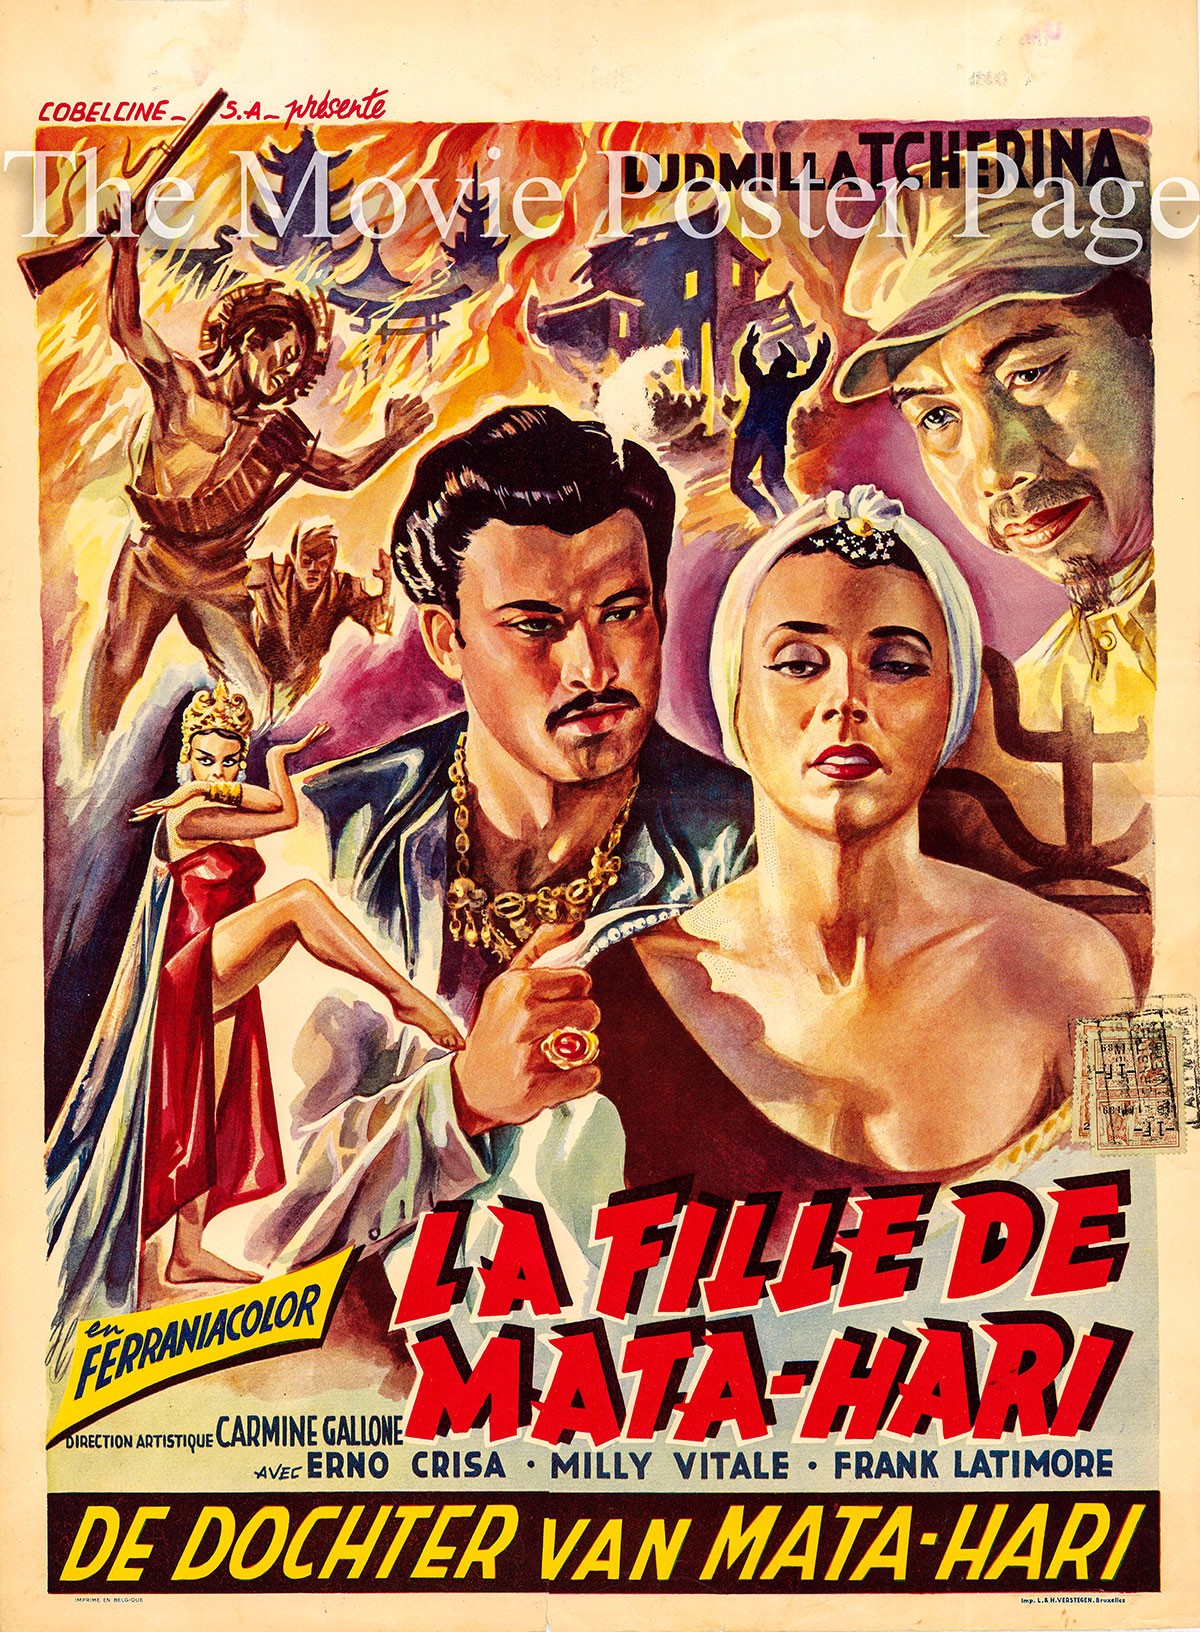 Pictured is a Belgian promotional poster for the 1954 Renzo Merusi and Carmine Gallone film Mata Hari\'s Daughter starring Ludmilla Tcherina.